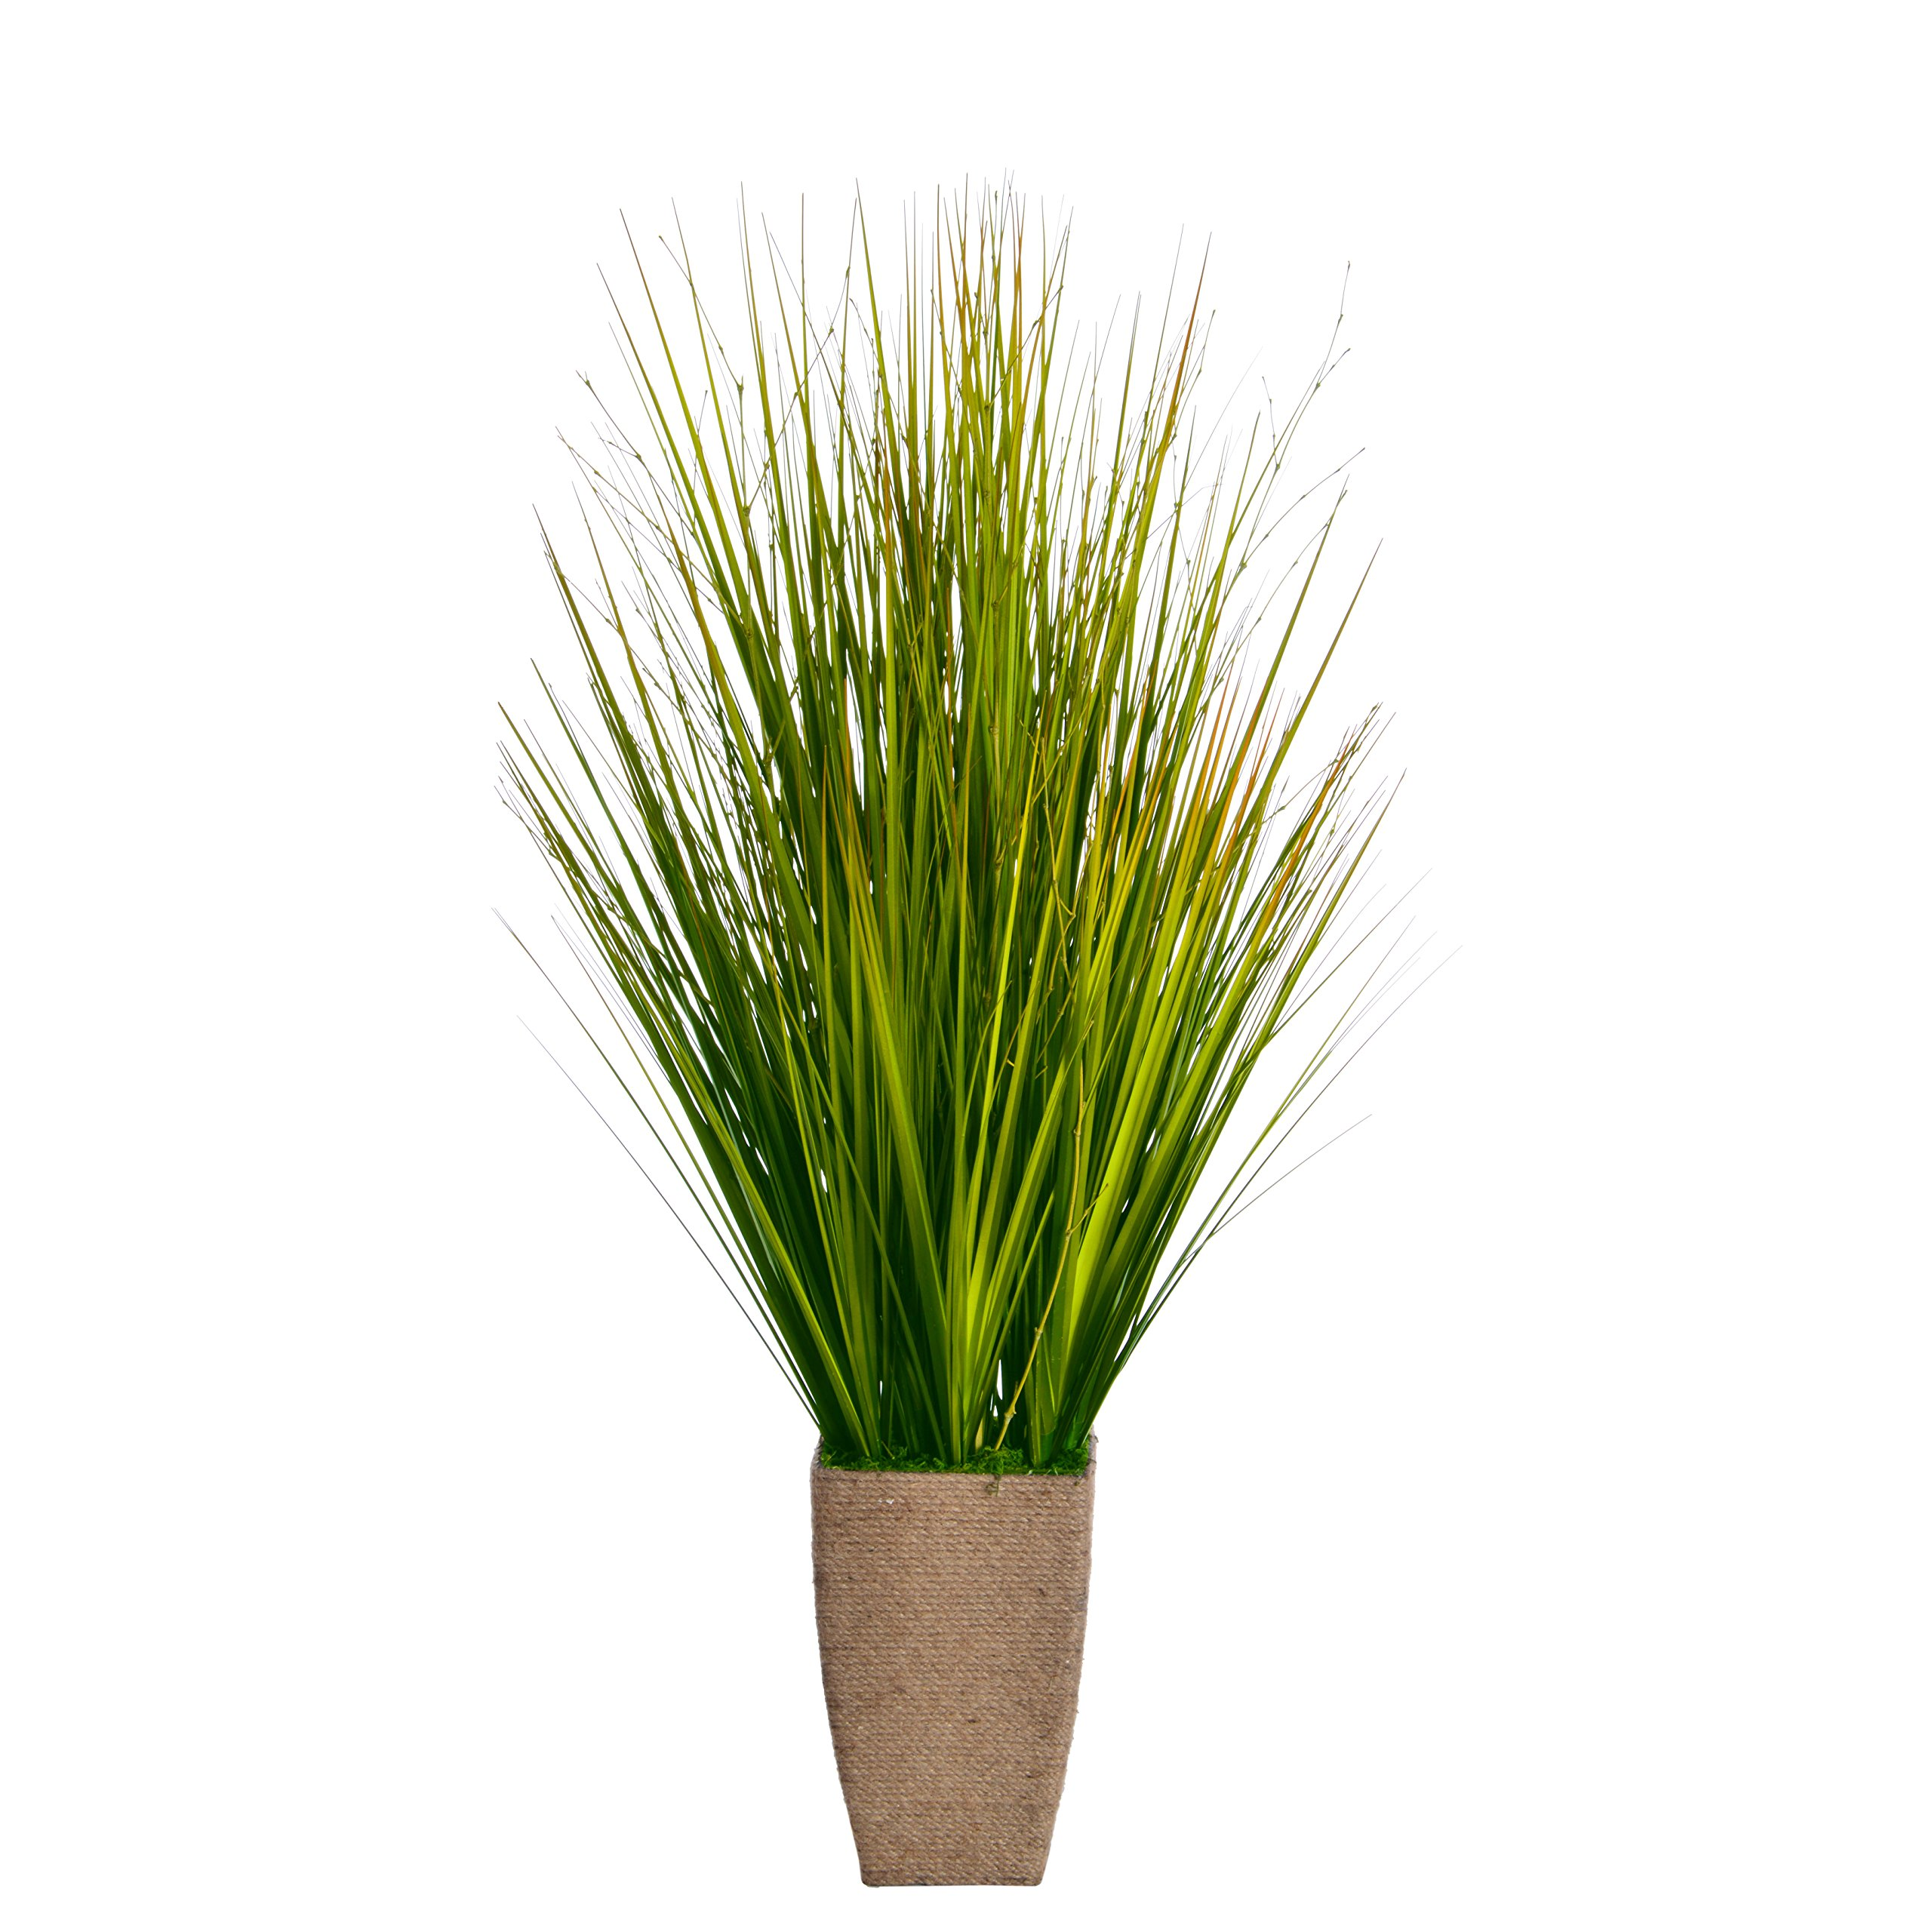 Laura Ashley VHA102436 Onion Grass Hemp Rope Container, 24 by 24 by 37''